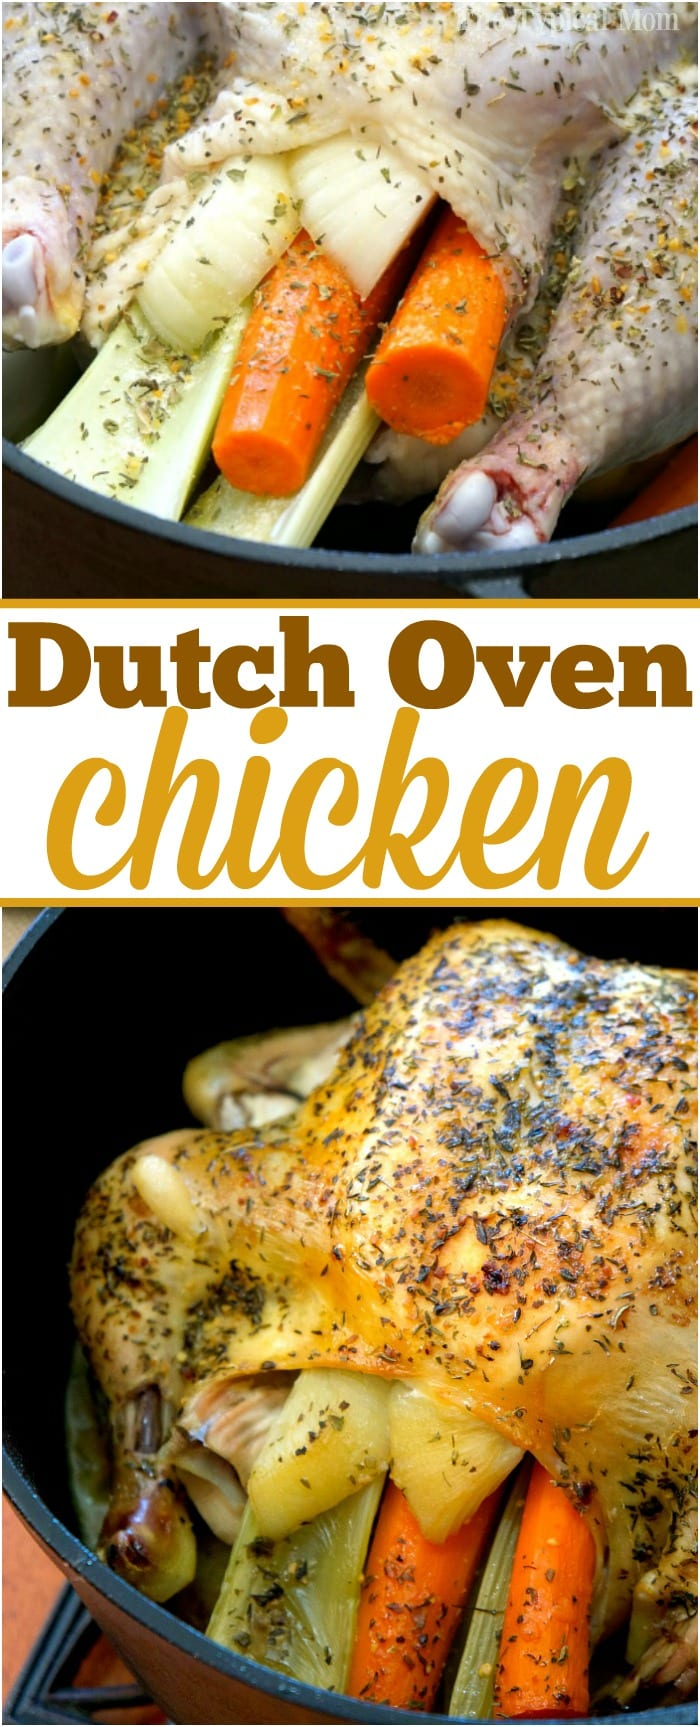 This Is How To Make A Dutch Oven Whole Chicken Its Super Easy And Flavorful